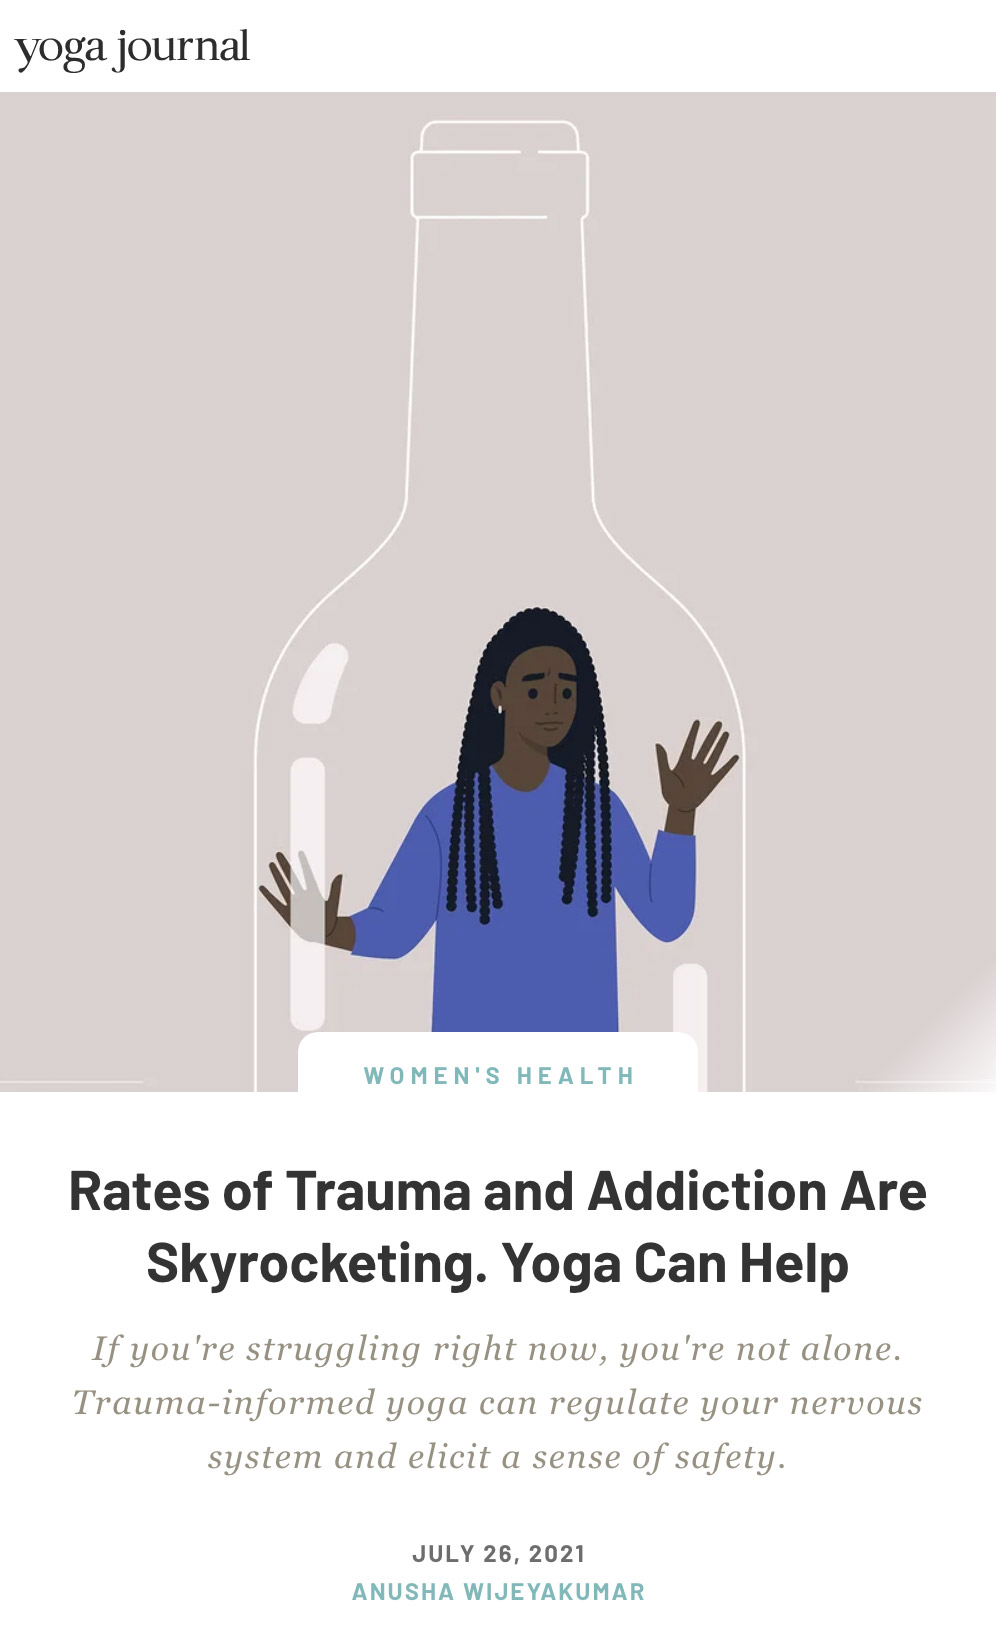 Rates of Trauma and Addiction Are Skyrocketing. Yoga Can Help